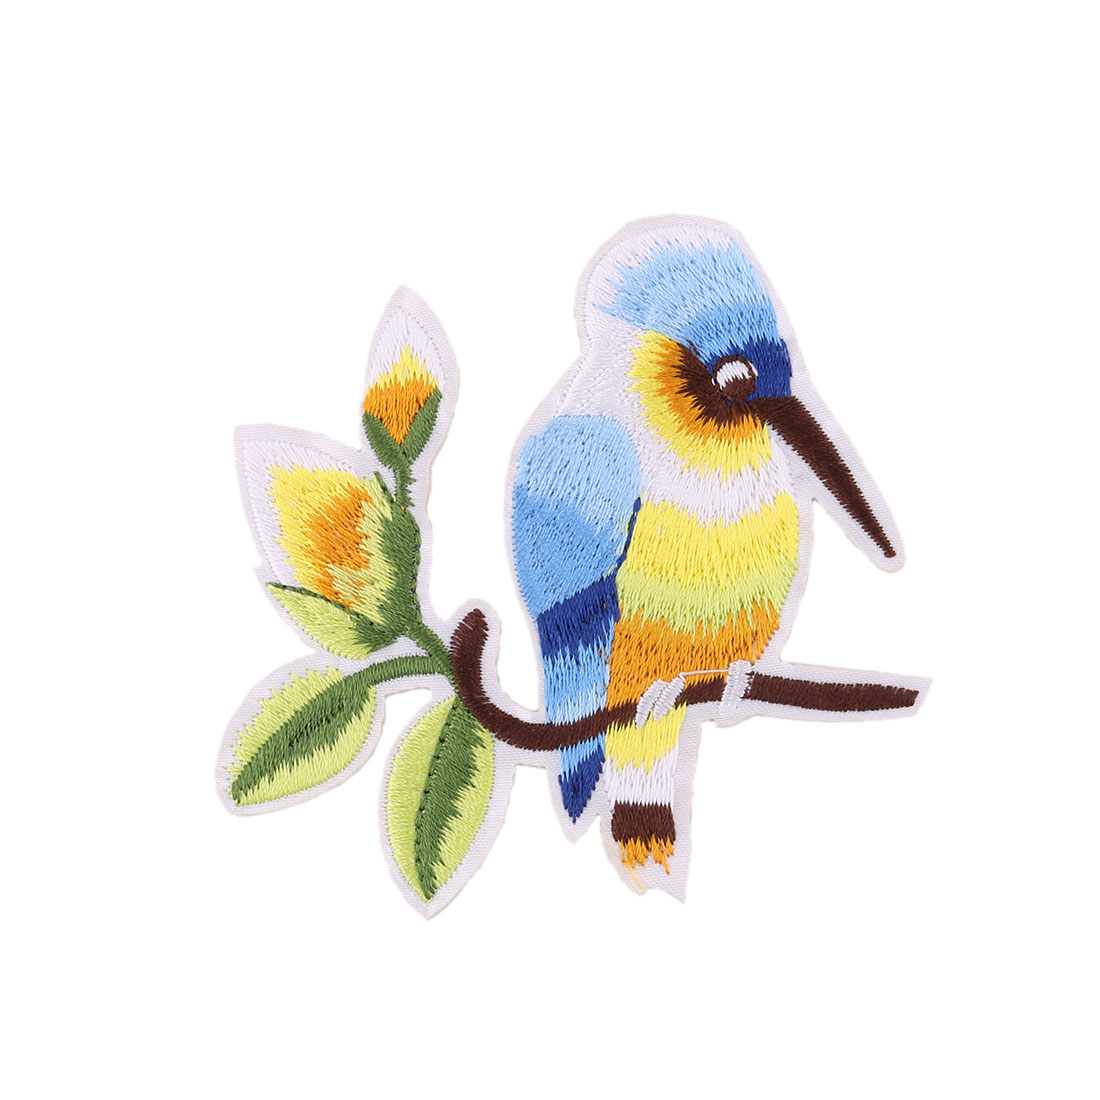 Unique Bargains Family Polyester Bird Pattern Embroidery Handicraft DIY Clothes Lace Applique